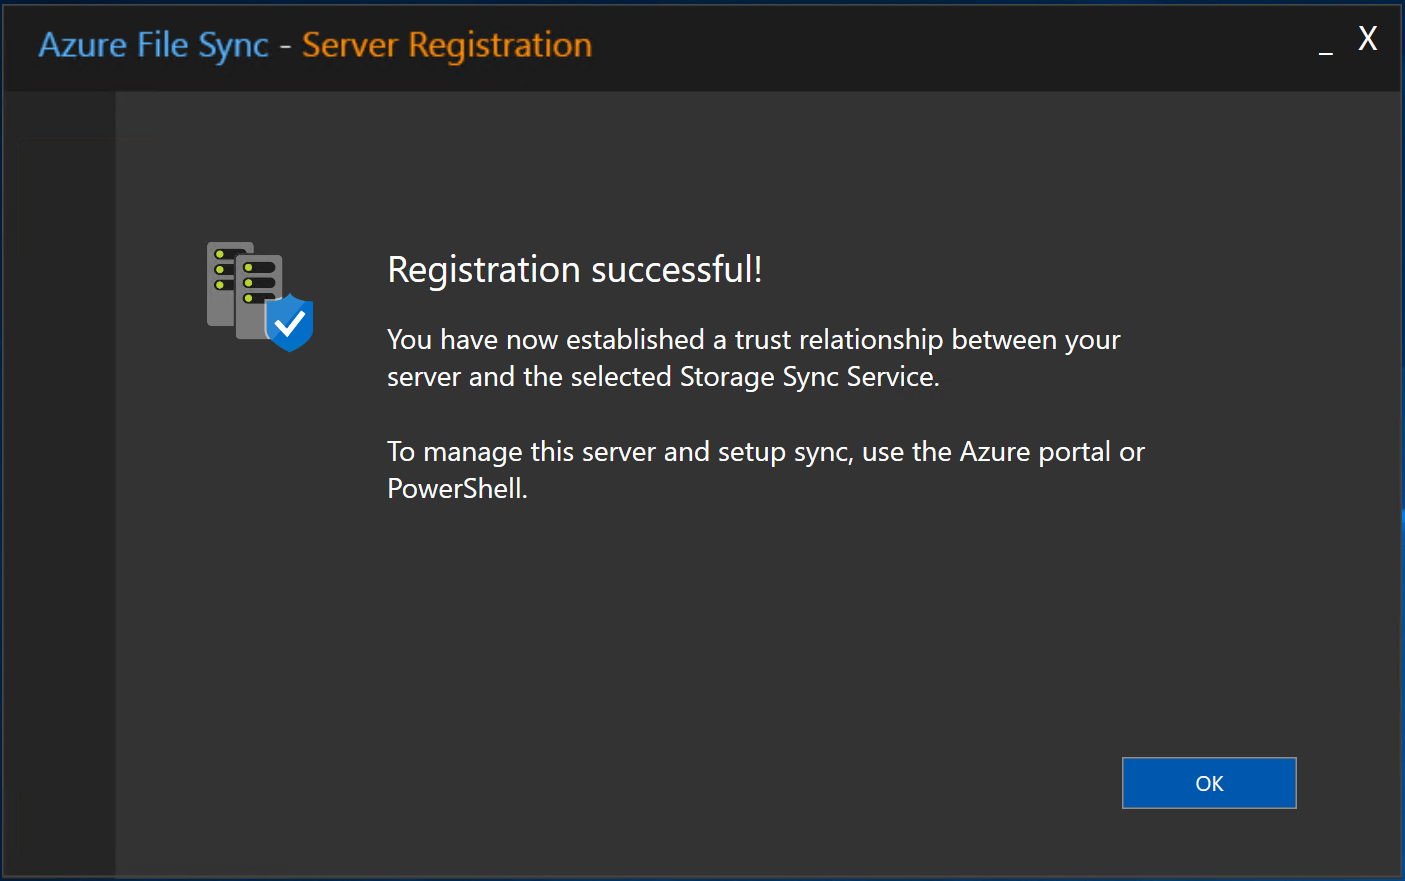 Azure File Sync - Server Registration - Success